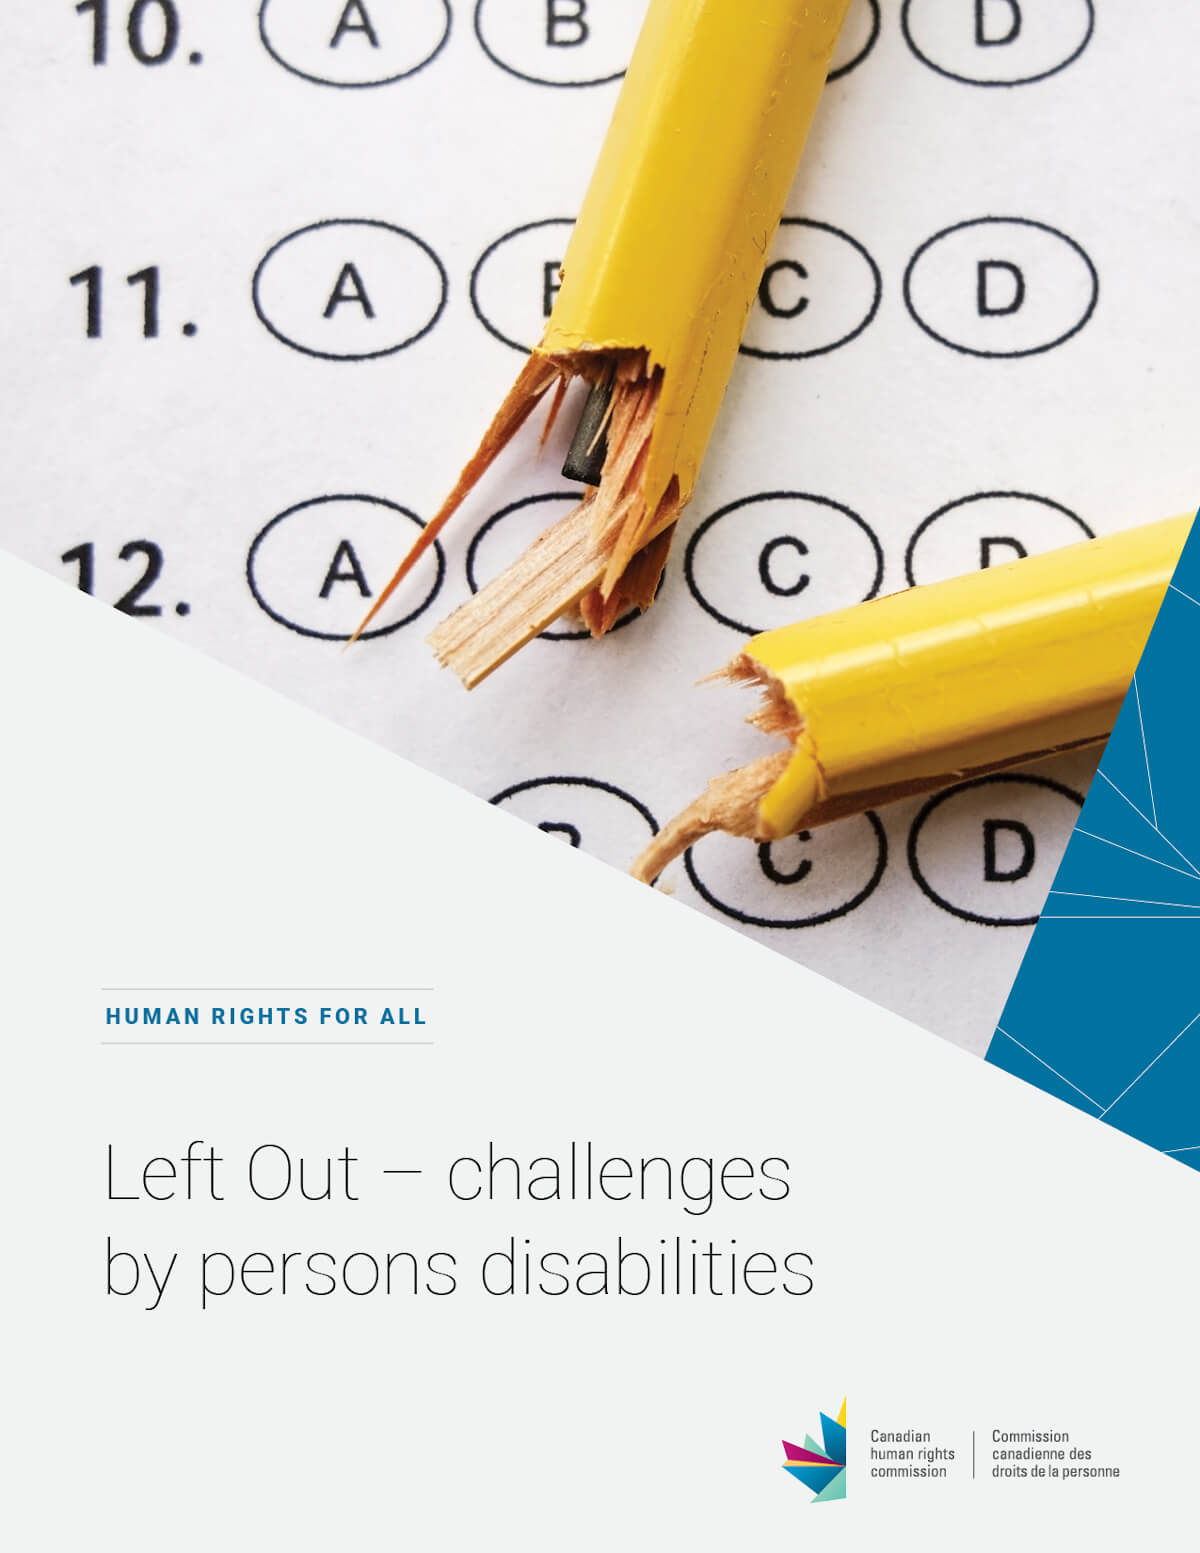 Left Out: Challenges faced by persons with disabilities in Canada's schools